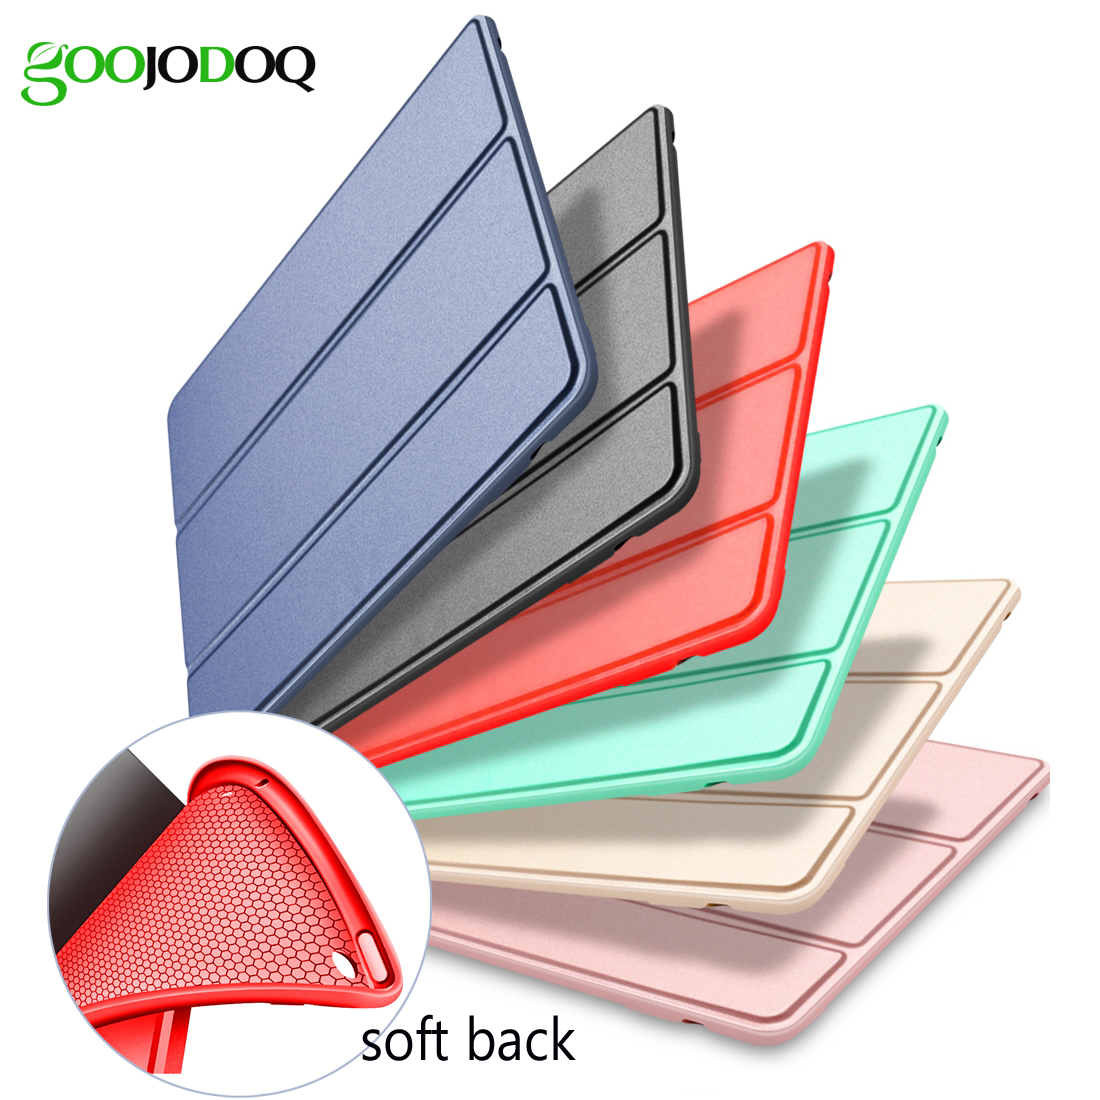 For iPad Air 2 Air 1 Case,Slim Pu Leather+Silicone Soft Back Smart Cover Sturdy Stand Auto Sleep for Apple iPad Air / 5 6 Coque for ipad mini4 cover high quality soft tpu rubber back case for ipad mini 4 silicone back cover semi transparent case shell skin